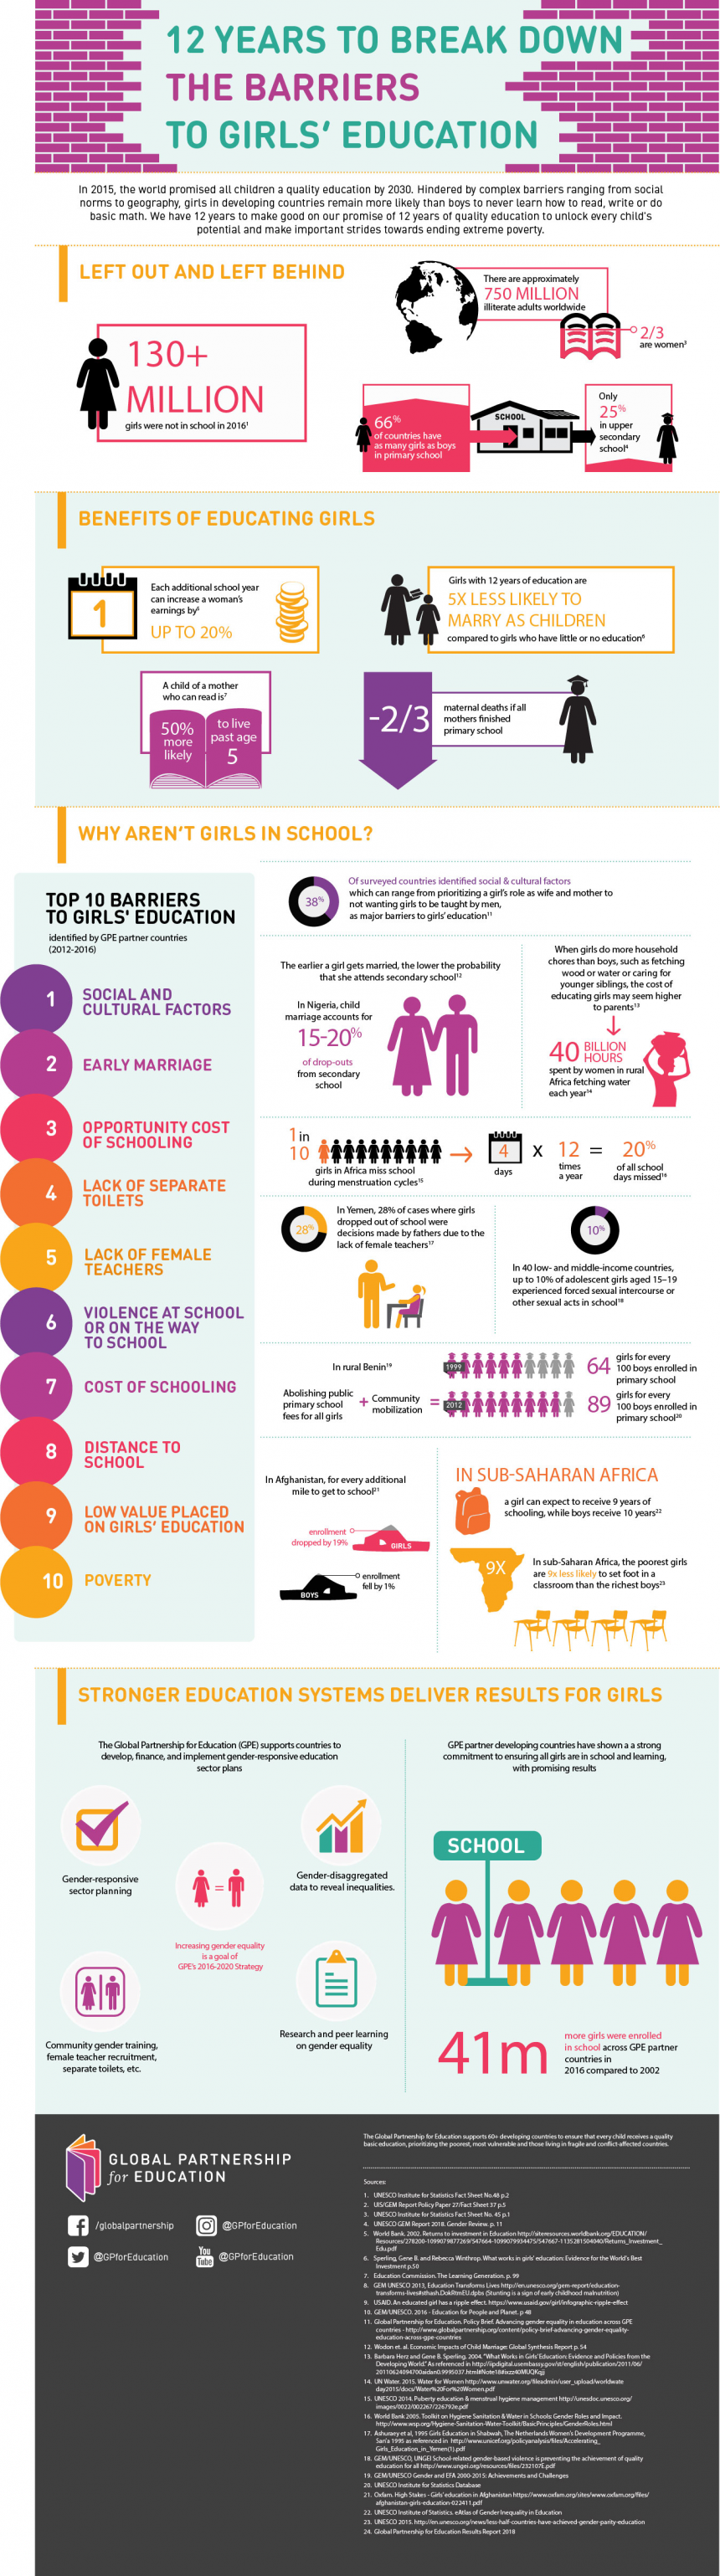 12 years to break down the barriers to girls' education